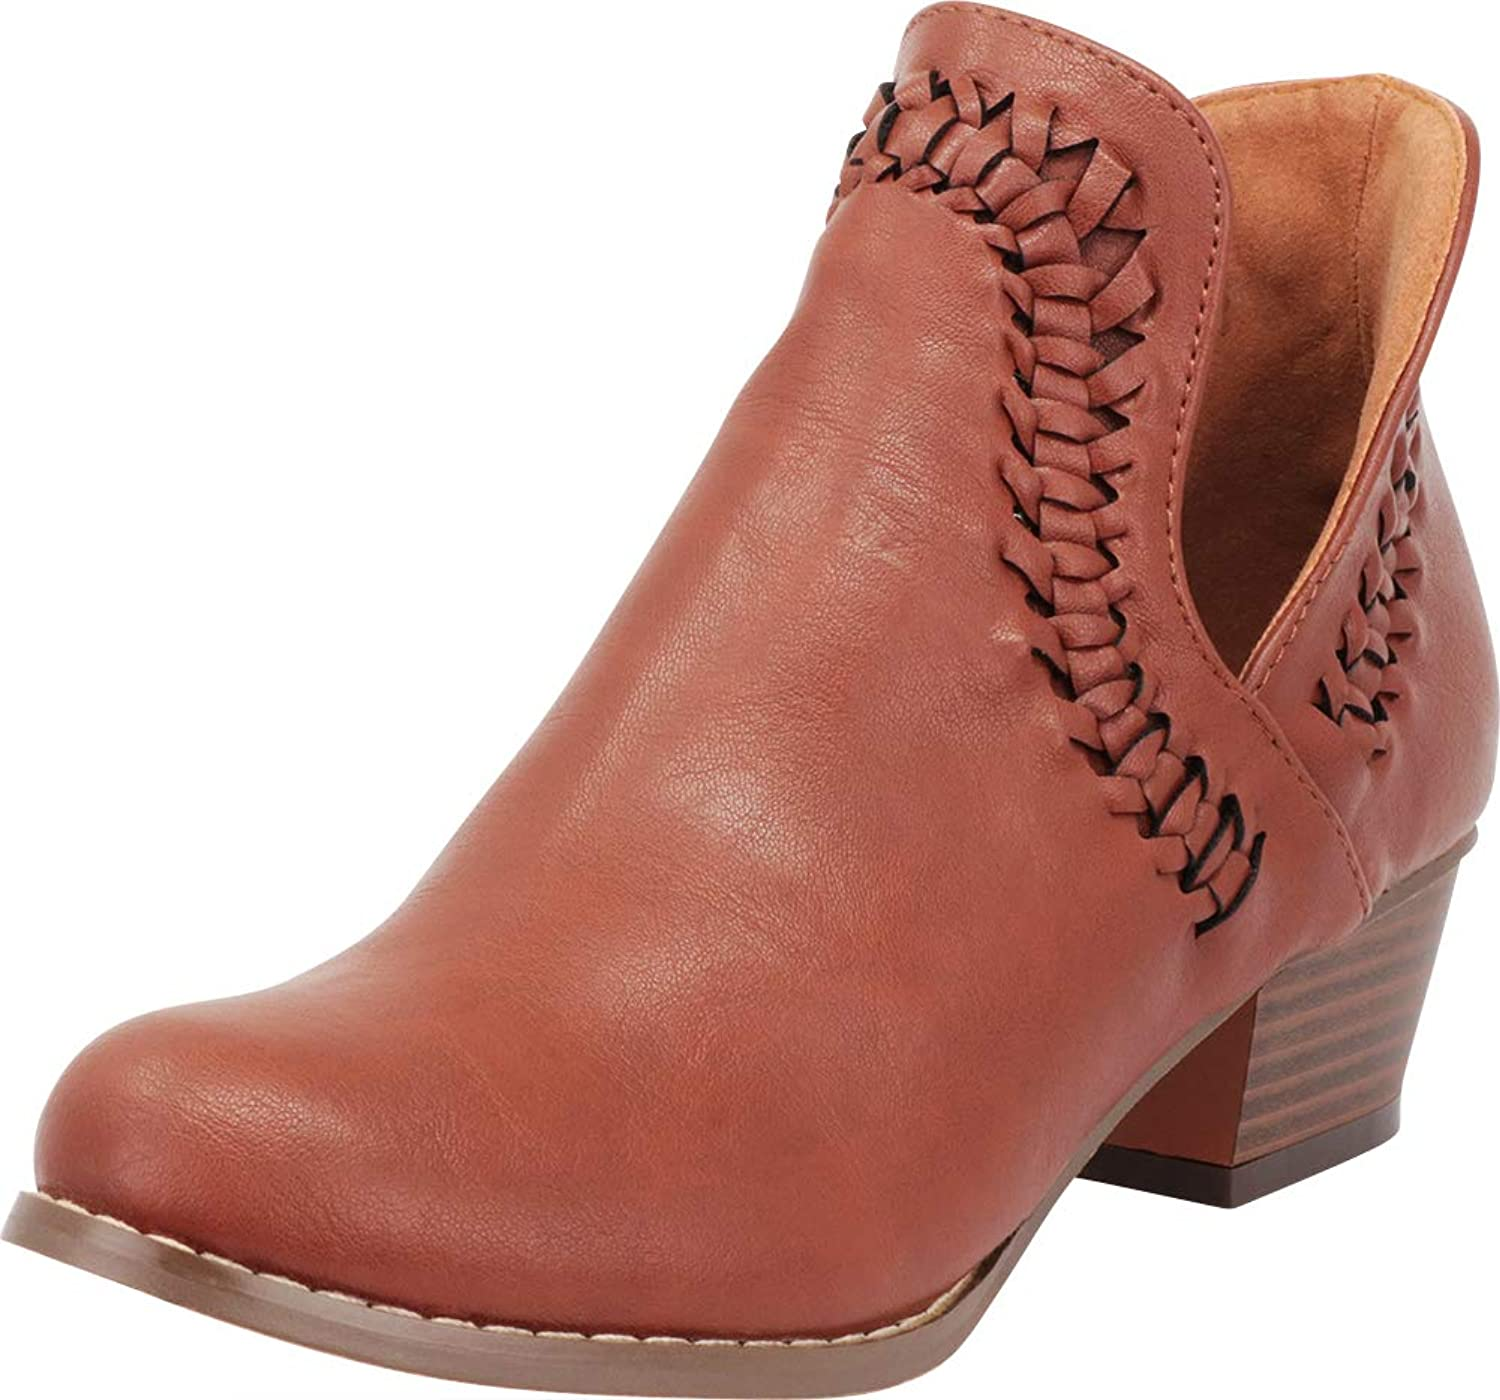 Cambridge Select Women's Western Whipstitch Side V Cutout Chunky Stacked Block Heel Ankle Bootie